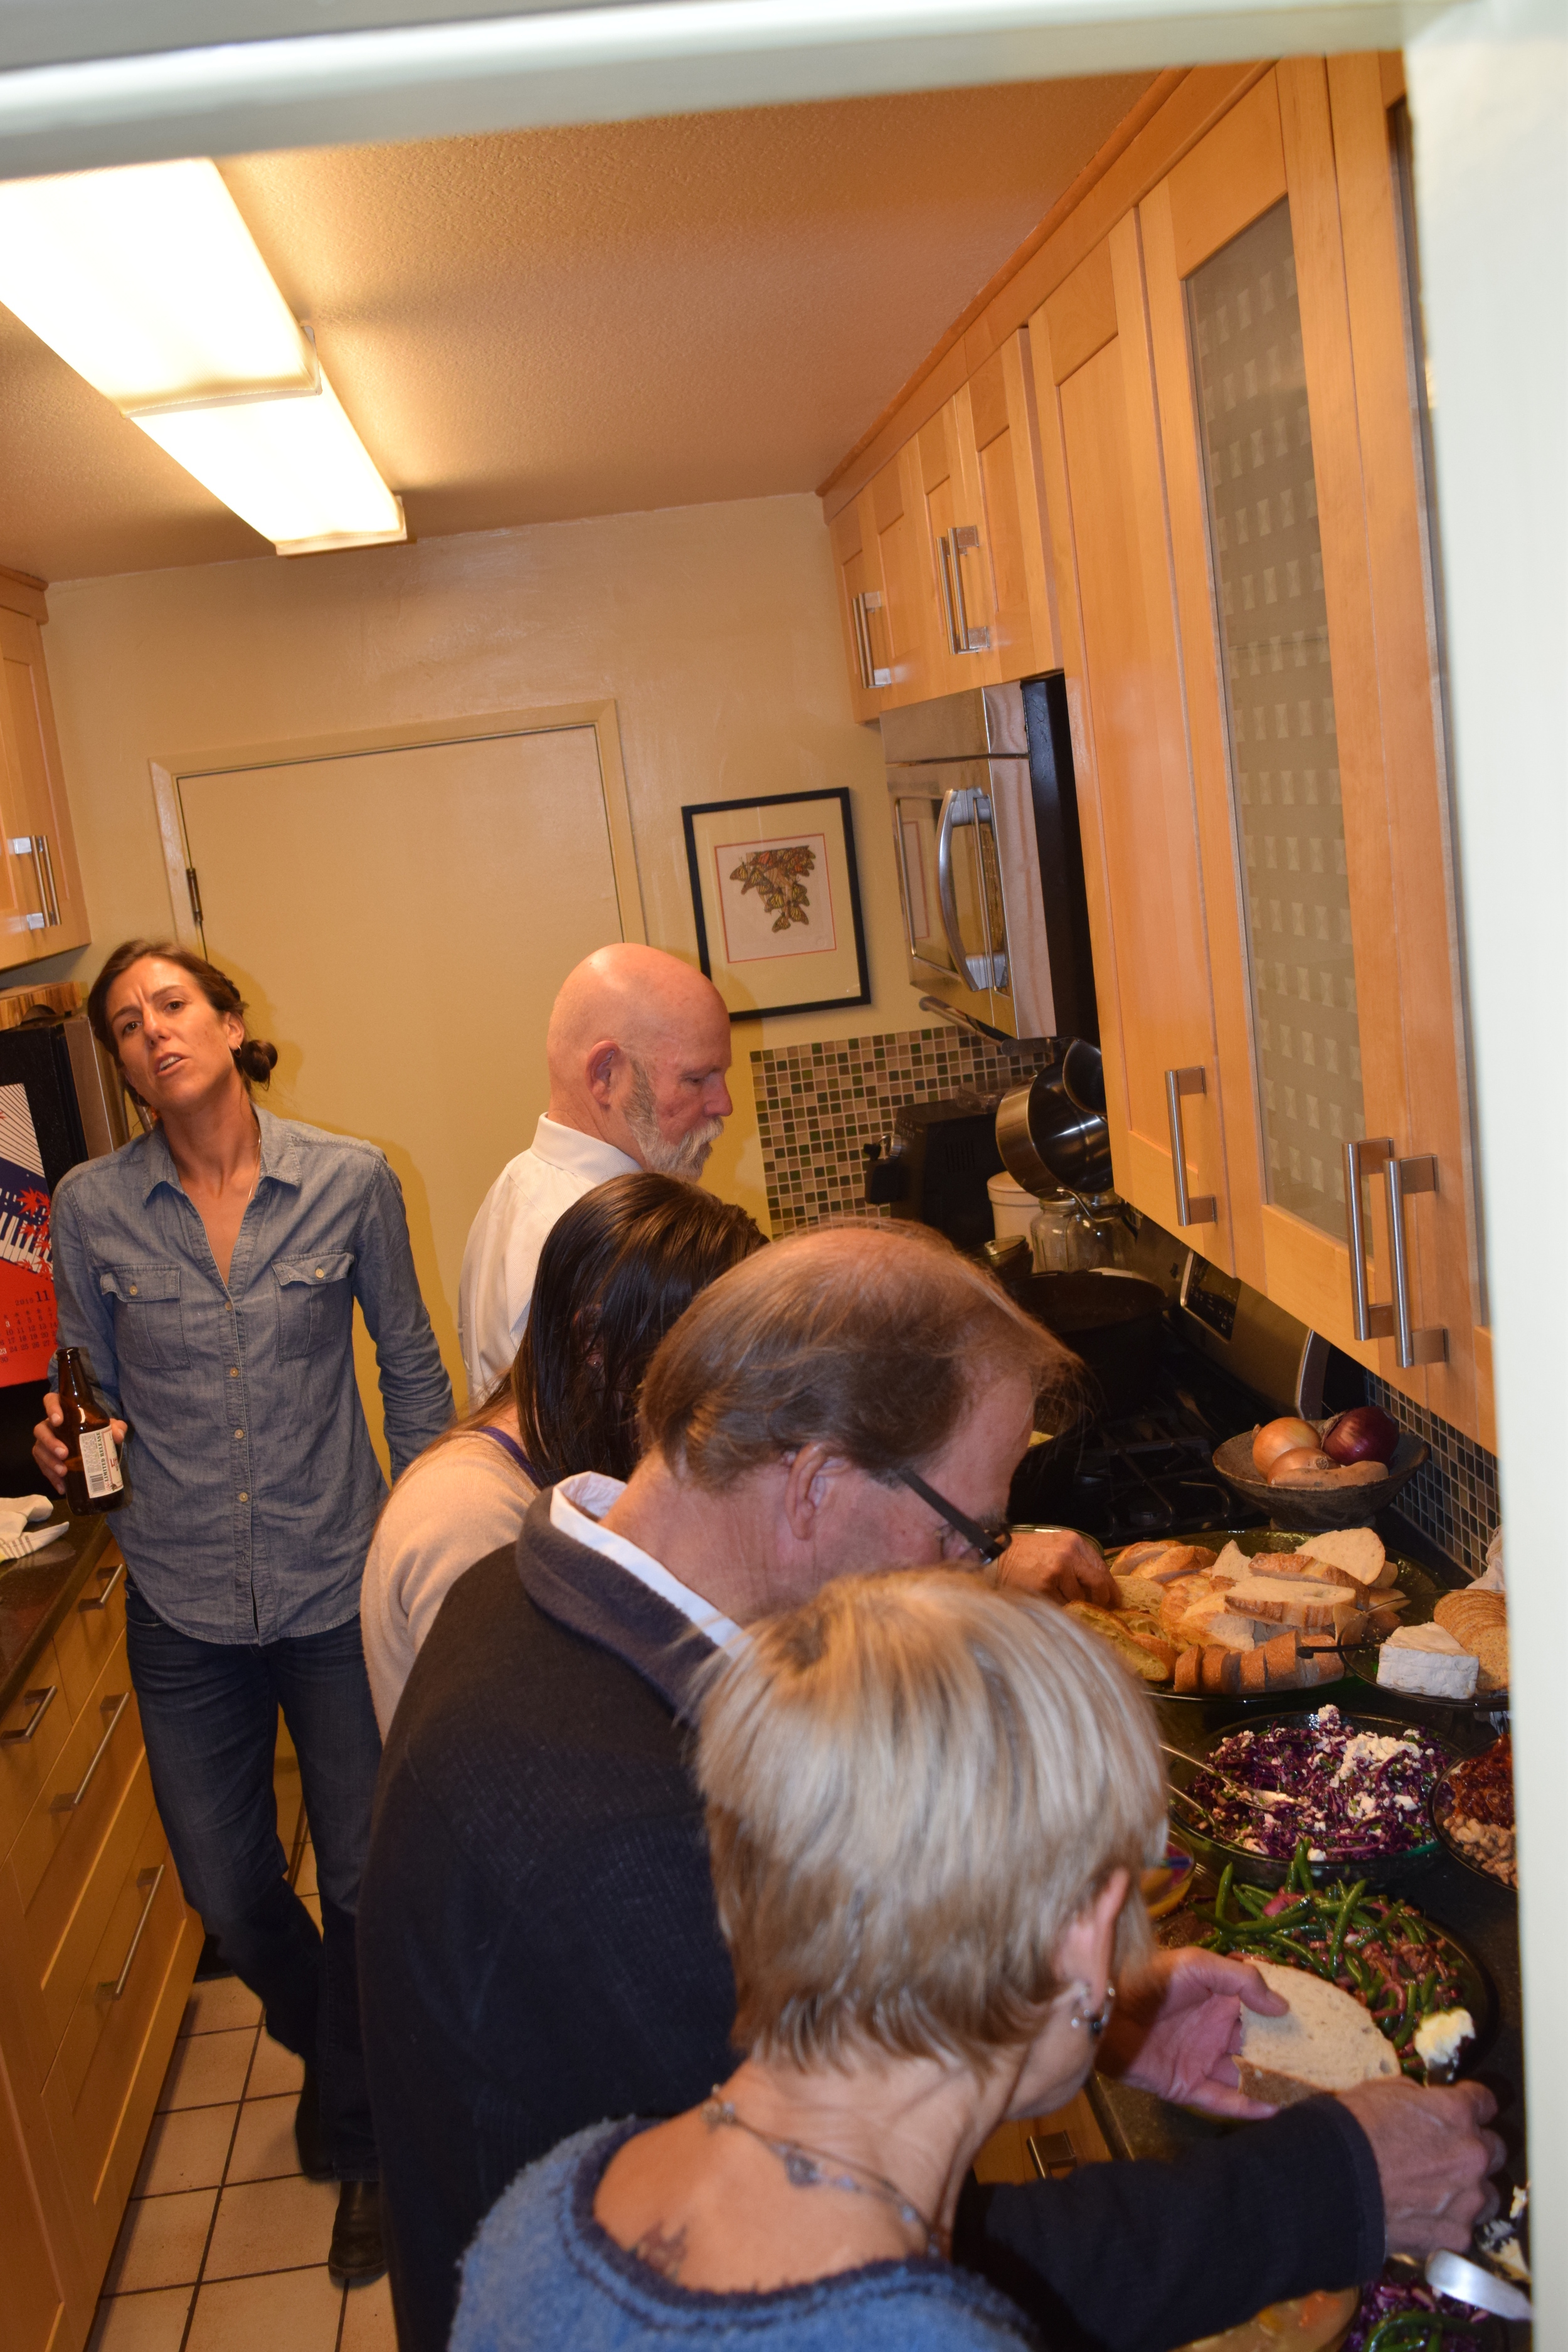 Heaven: a beer in hand; a kitchen full of food and friends! Disregard what may look like a pained facial expression.What was more likely was that I was actually singing a hymn here.